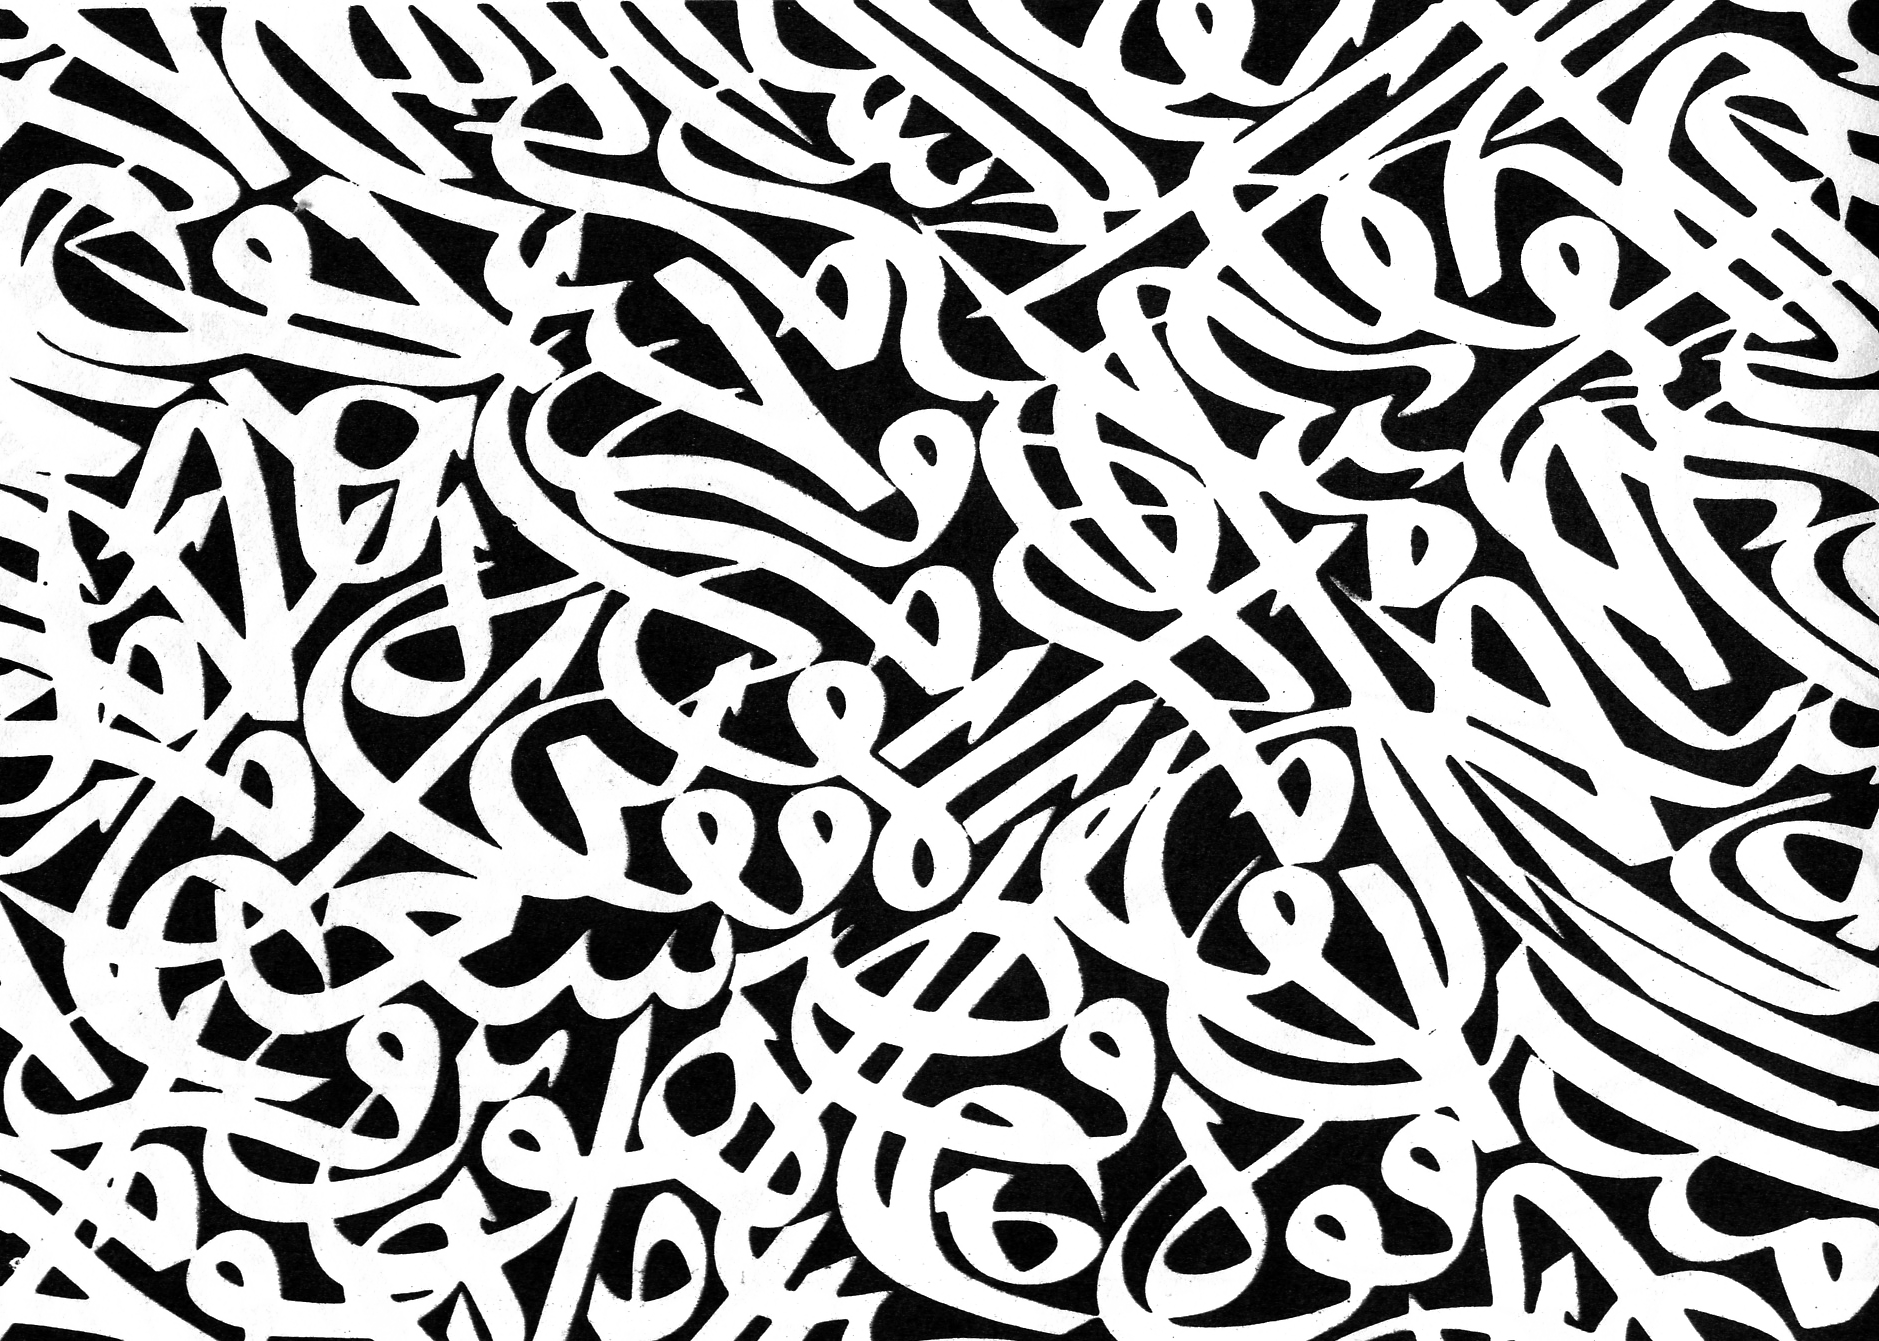 Generative letterism computer generated arabic letter